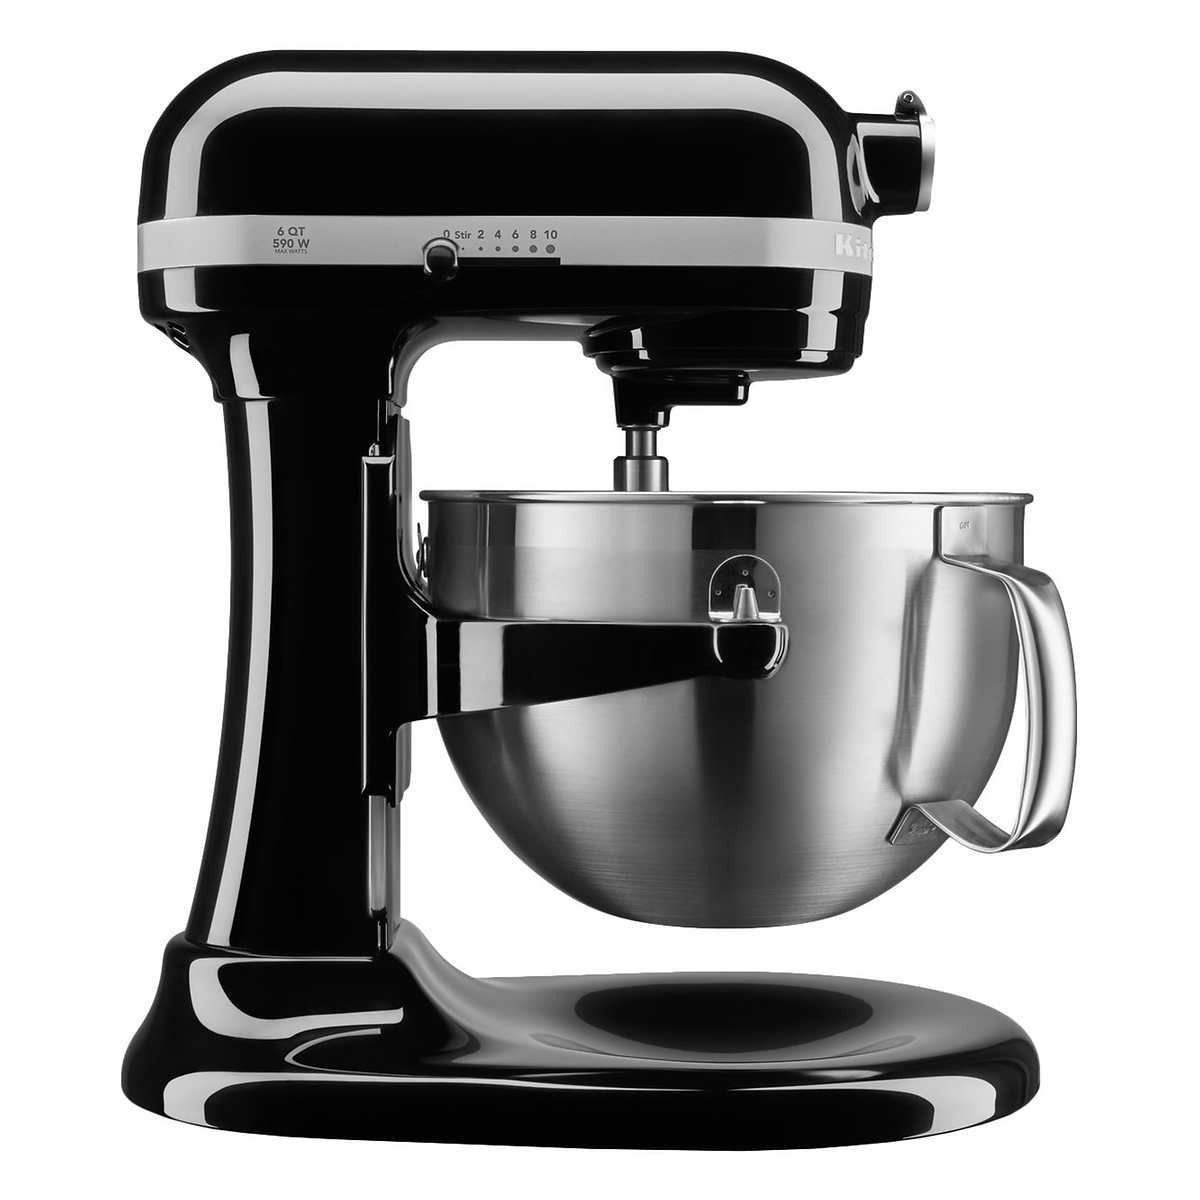 Peachy Kitchenaid 5 7 L 6 Qt Professional Stand Mixer Home Remodeling Inspirations Cosmcuboardxyz